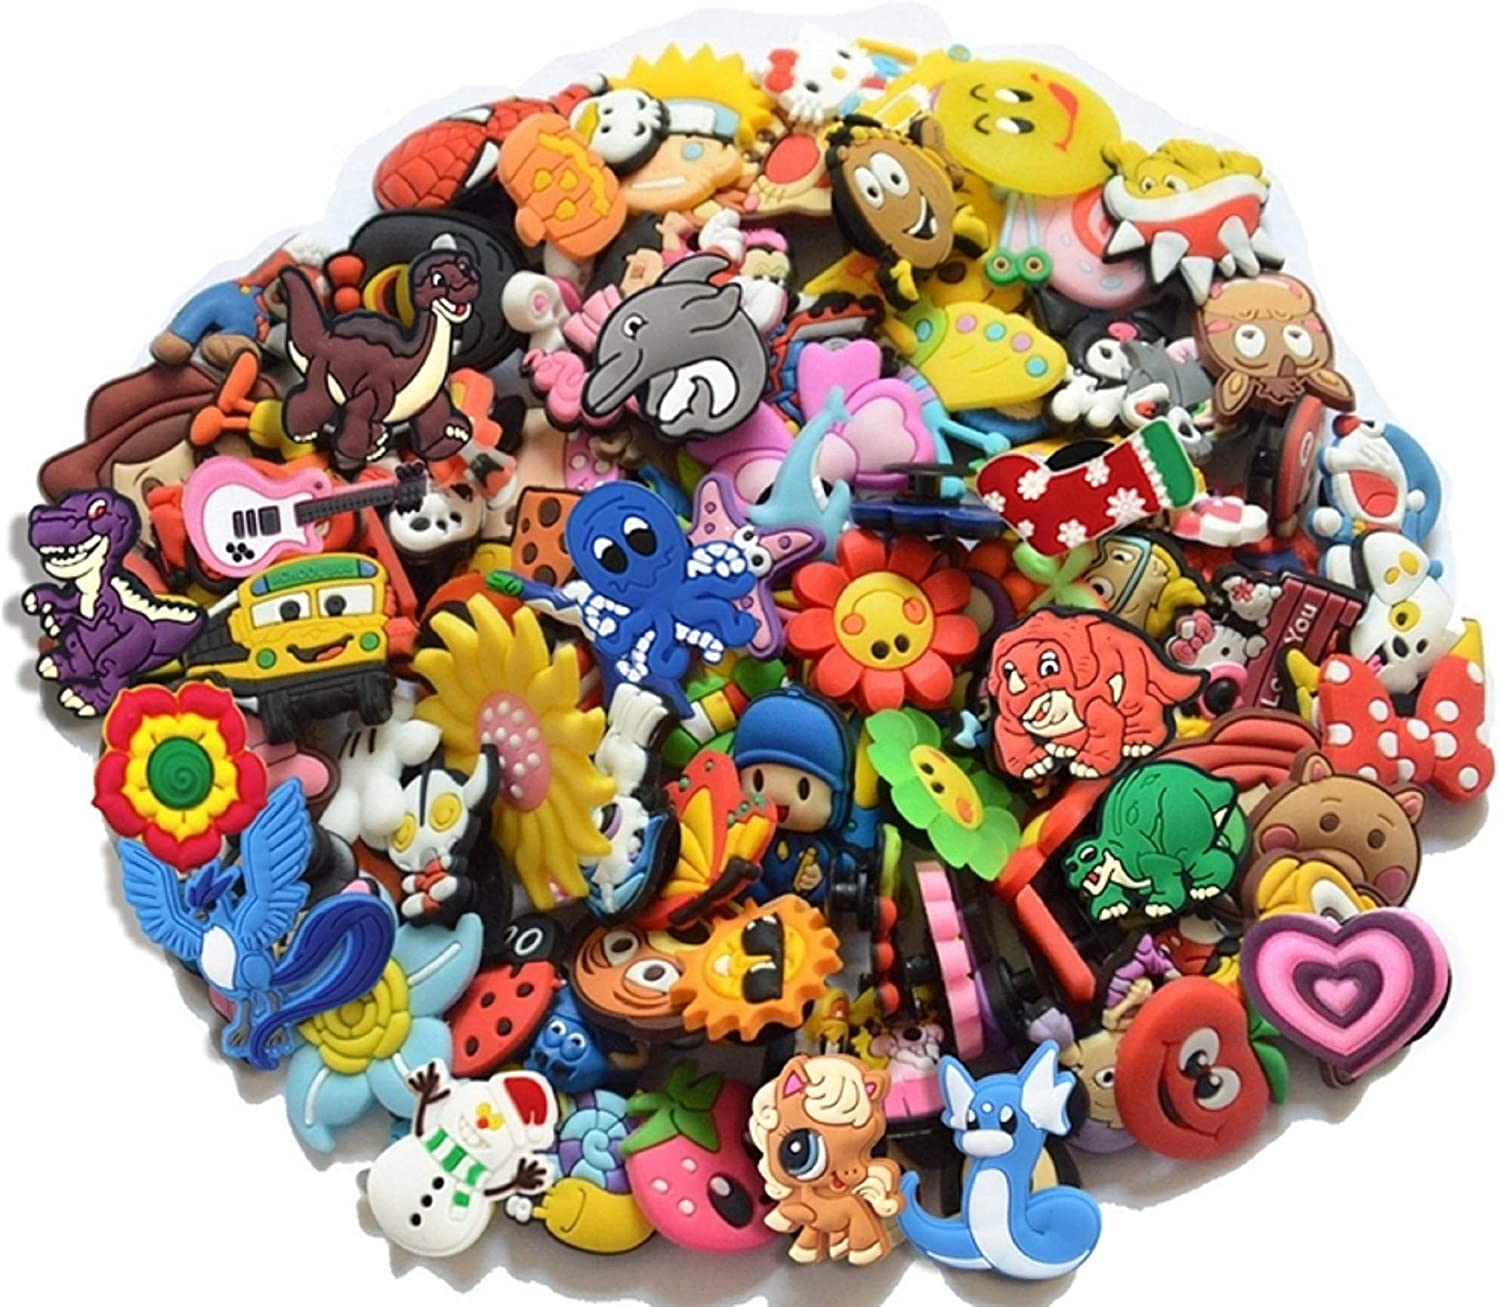 20 Piece Colorful Random Shoe Charms for Crocs with Bracelet For Girls, Boys, Teens